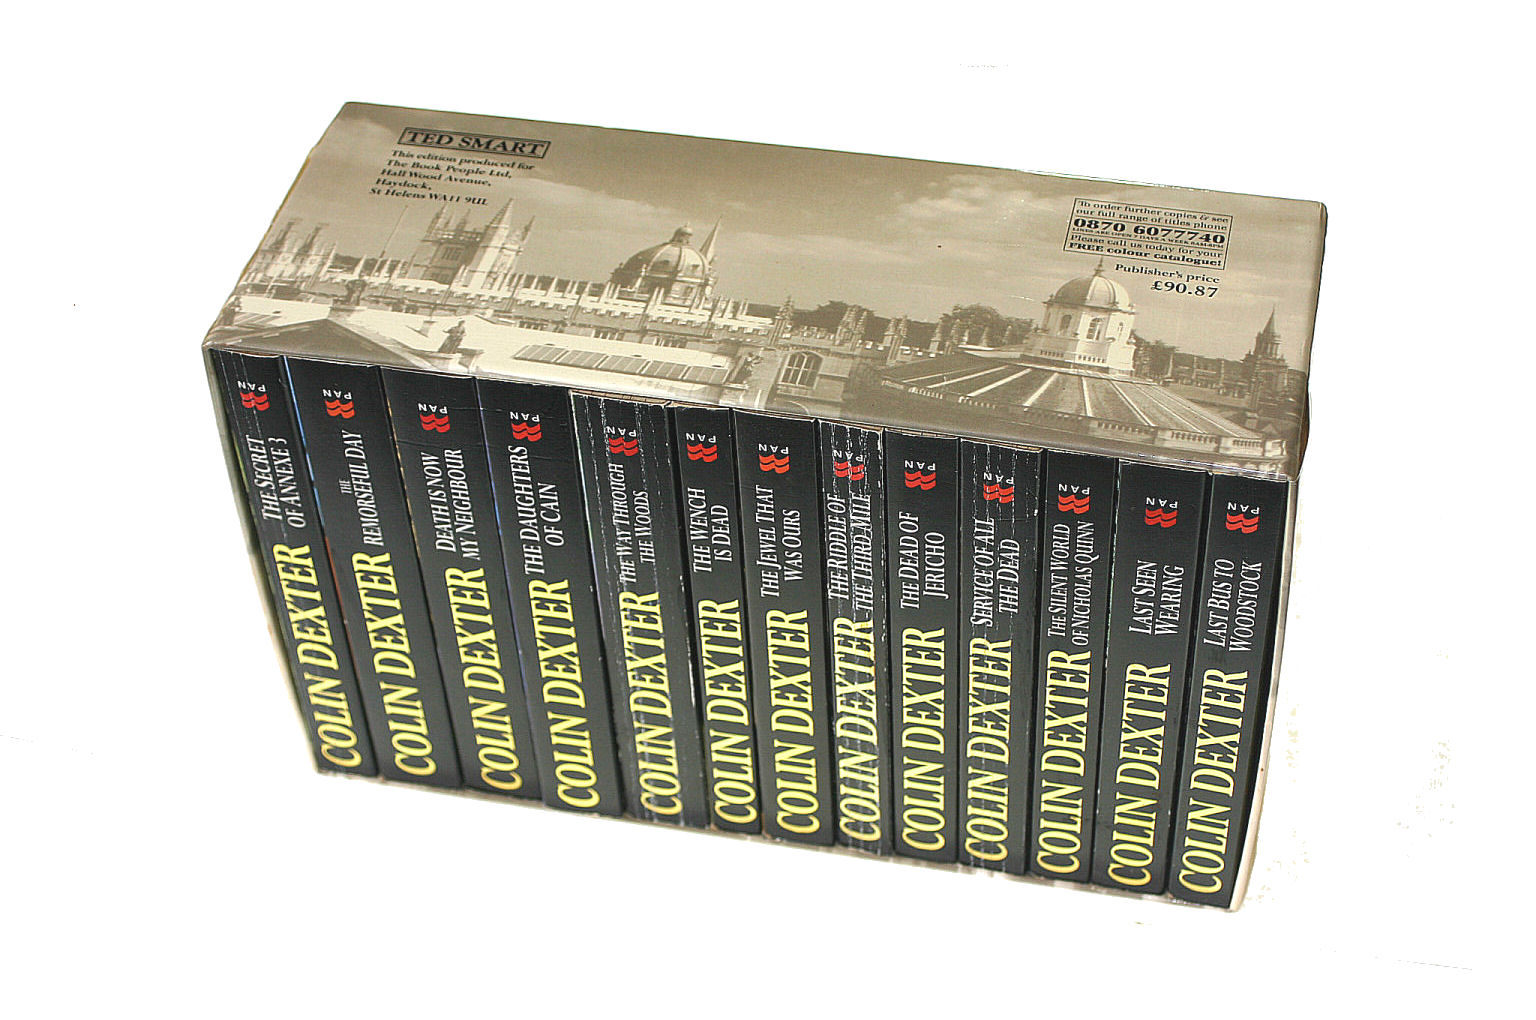 Image for Inspector Morse: The Complete Collection : 13 Pan Paperbacks In Slipcase. Remorseful Day, Dead Of Jericho, Death Now My Neighbour, Last Seen Wearing, Last Bus Woodstock, Way Through Woods, Daughters Of Cain, Wench Is Dead, Jewel That Was Ours, Etc.